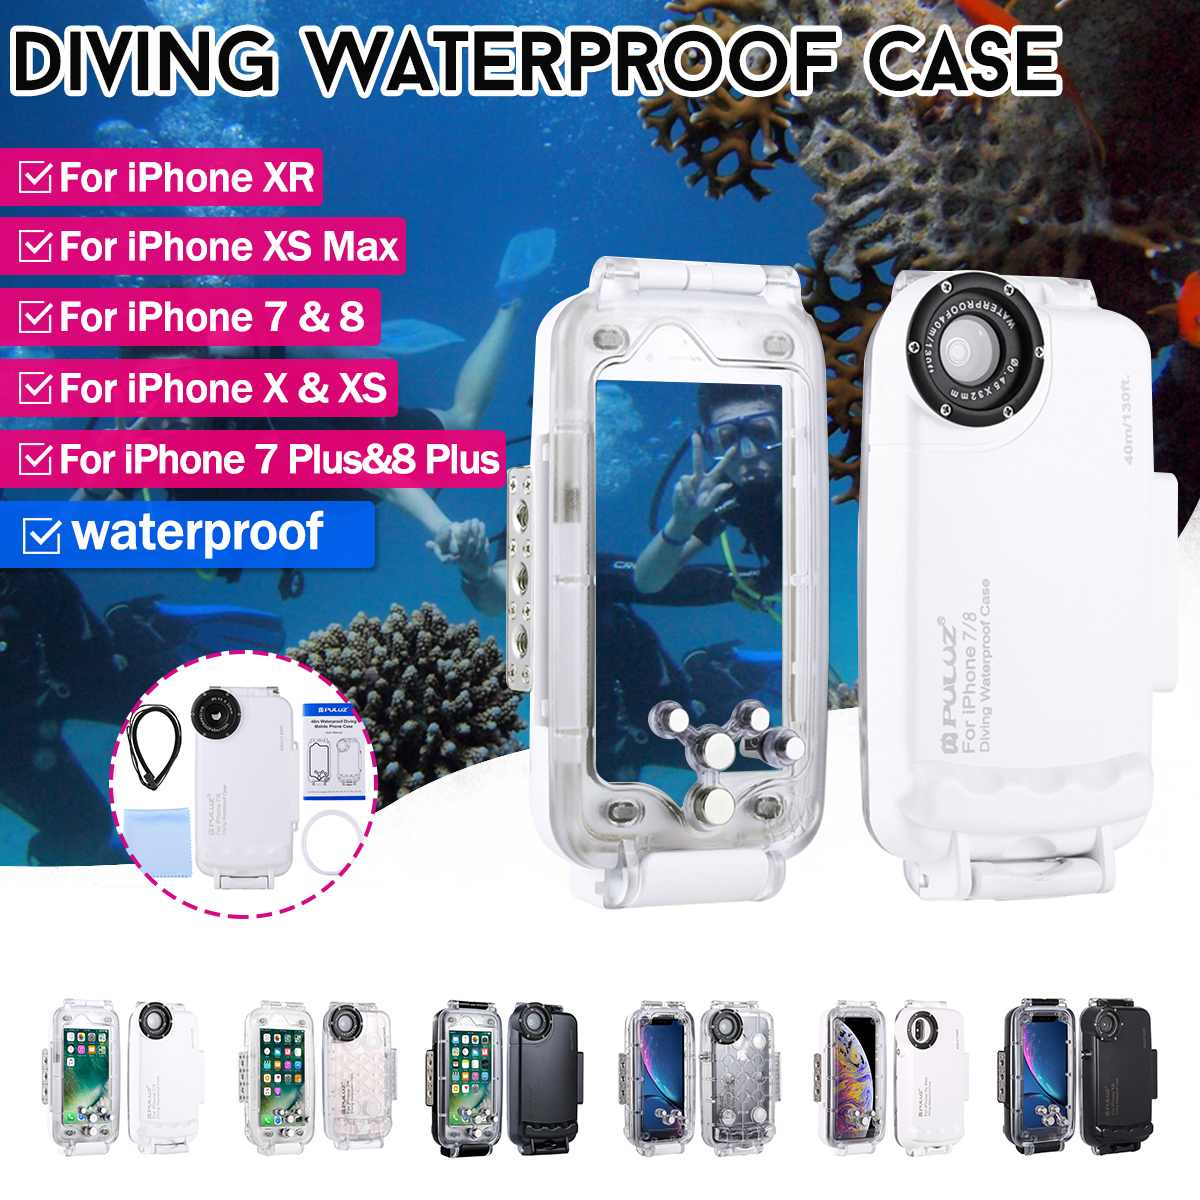 PULUZ 40m Waterproof Housing Photo Taking Underwater Snorkeling Video Taking Cover For iPhone 7,8 ,7 Plus,8 Plus ,X,XS,XS Max,XRPULUZ 40m Waterproof Housing Photo Taking Underwater Snorkeling Video Taking Cover For iPhone 7,8 ,7 Plus,8 Plus ,X,XS,XS Max,XR